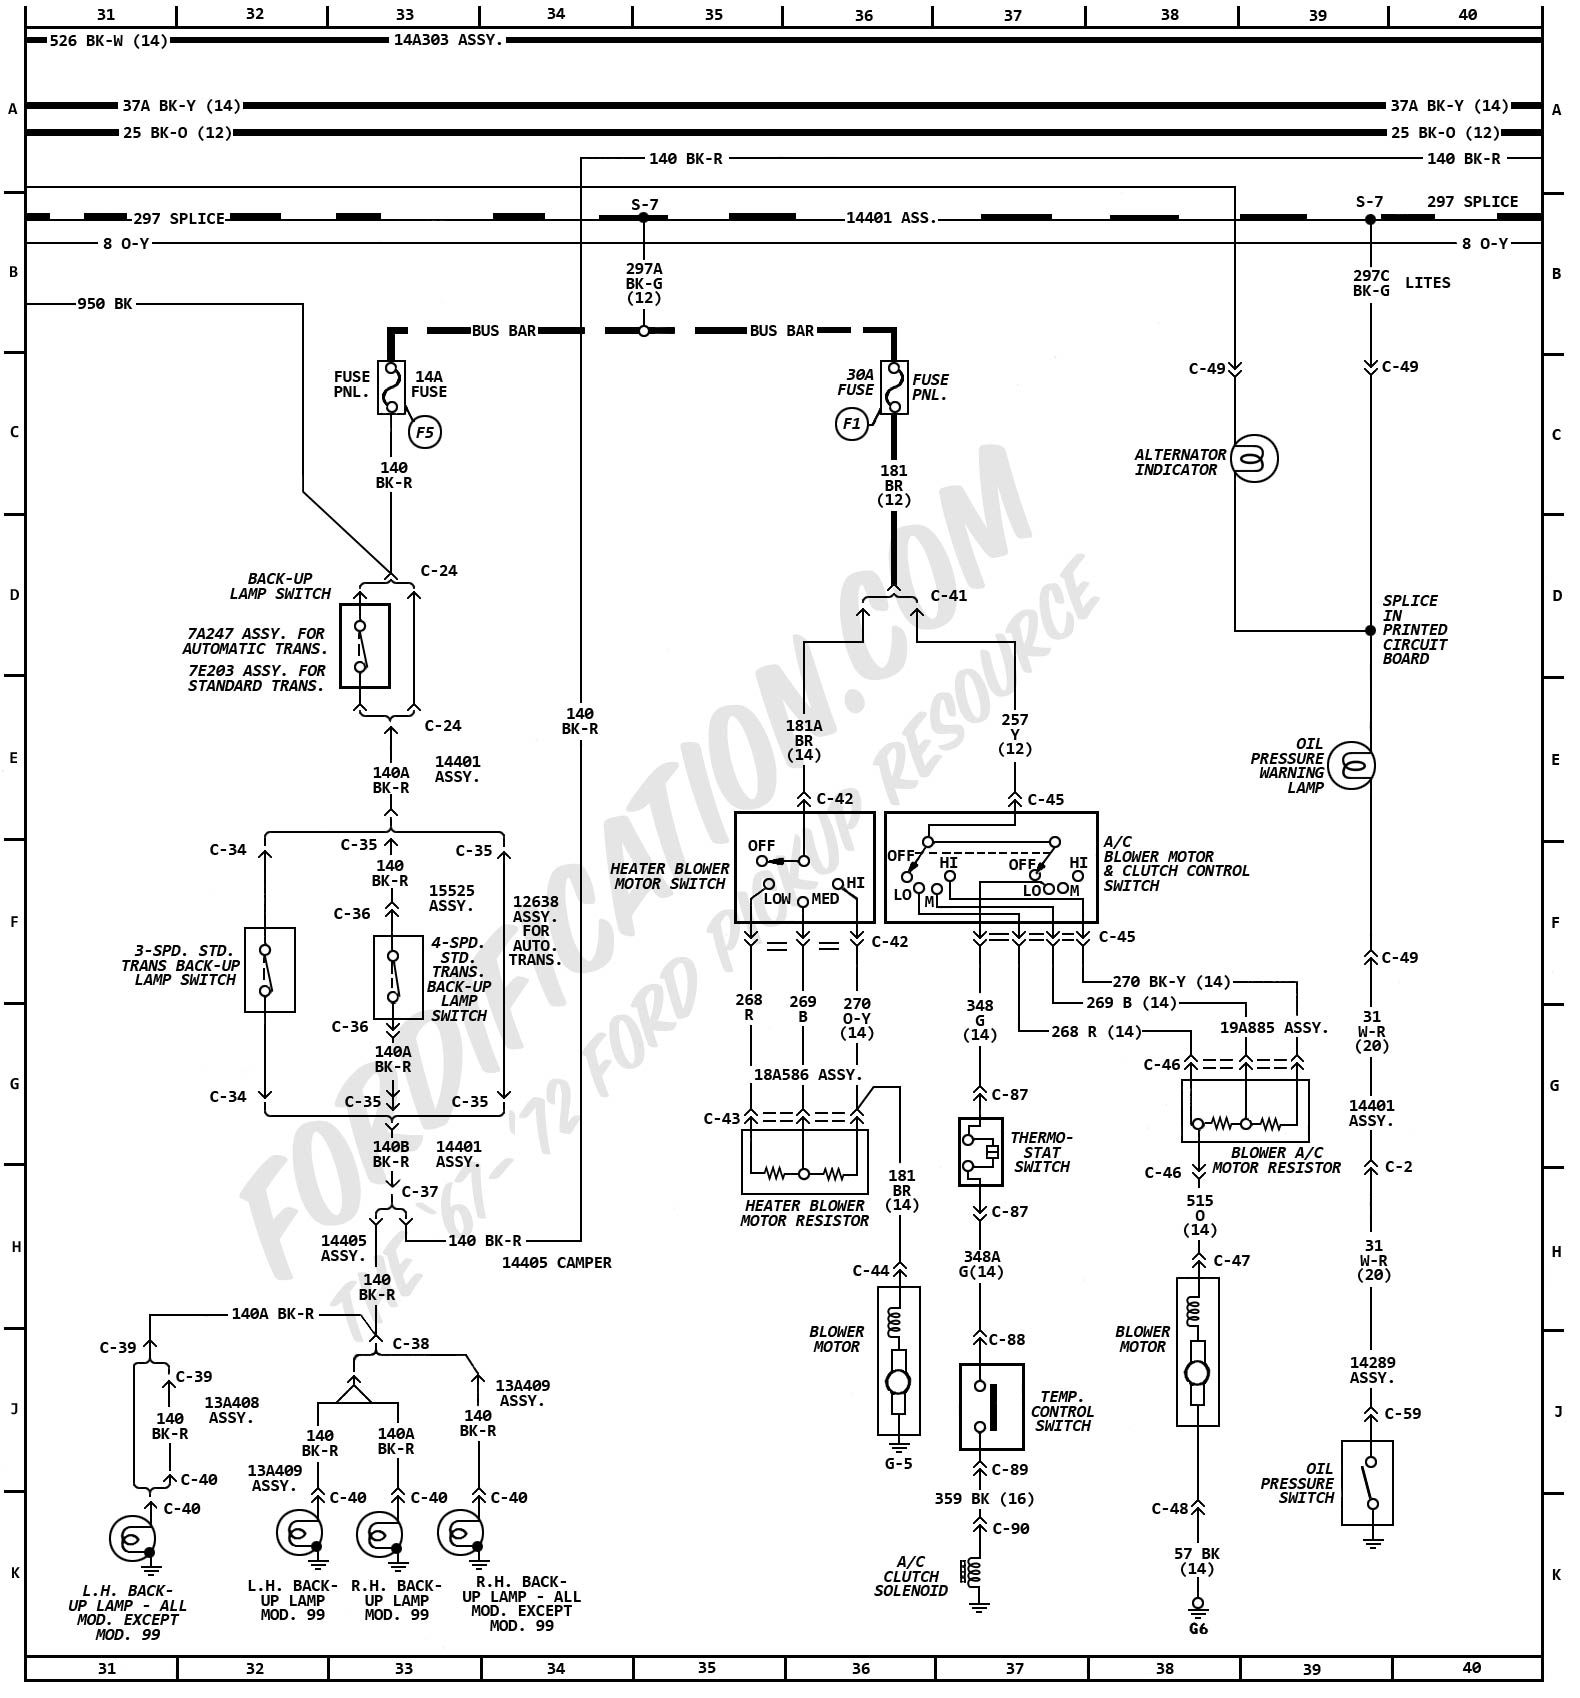 1972 Ford Truck Wiring Diagrams 2002 Dodge Diagram Blower Motor H 38 4